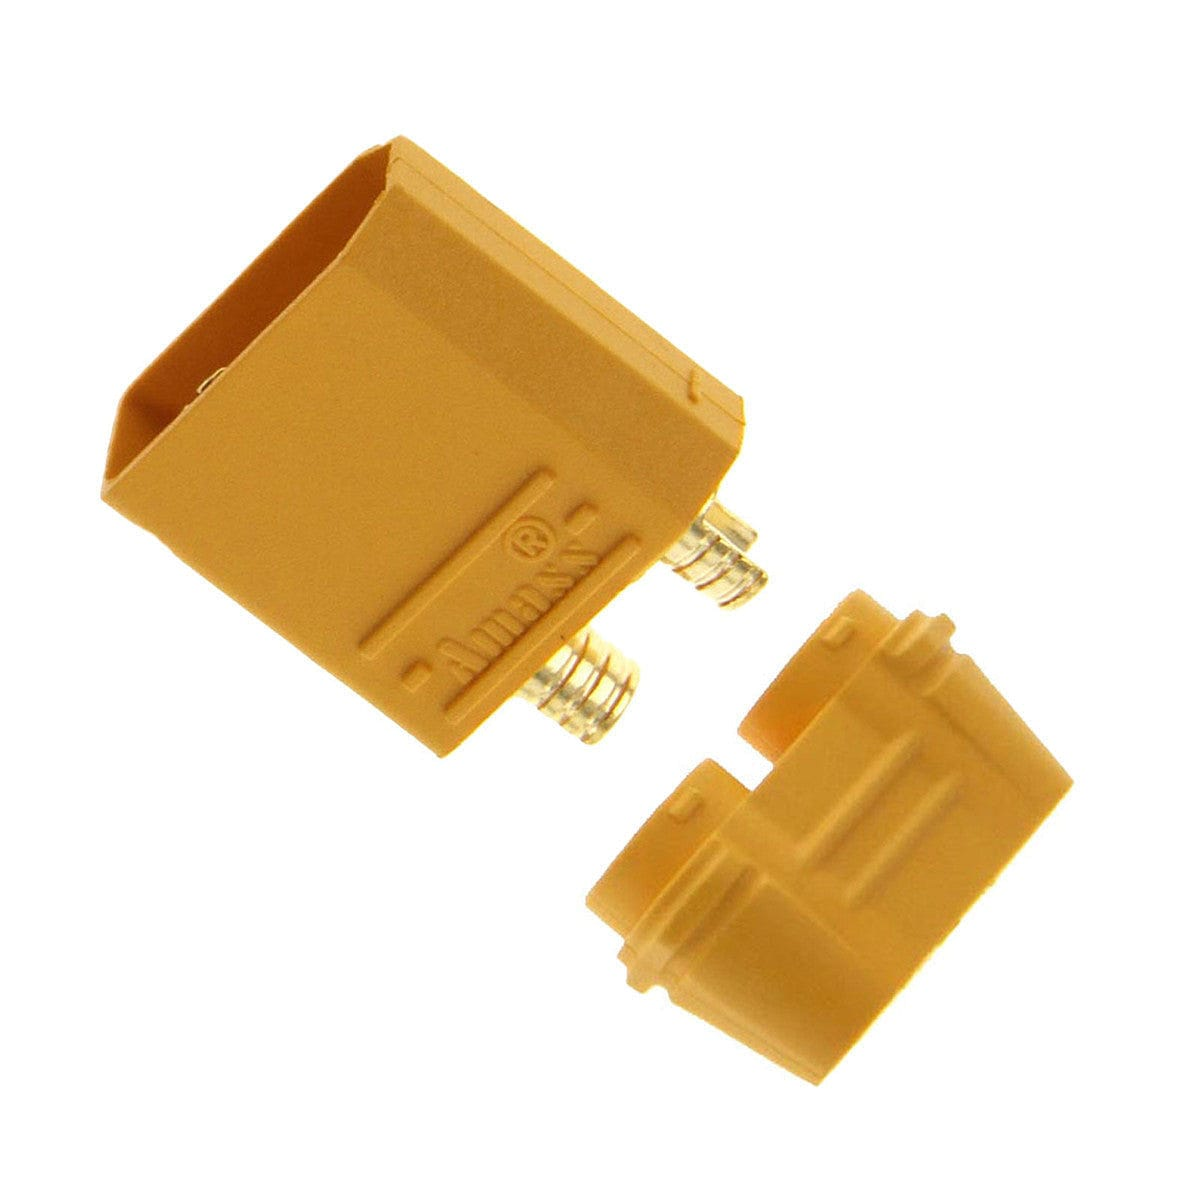 AMASS XT90 FEMALE CONNECTOR PLUG FOR LIPO OR NIMH BATTERIES